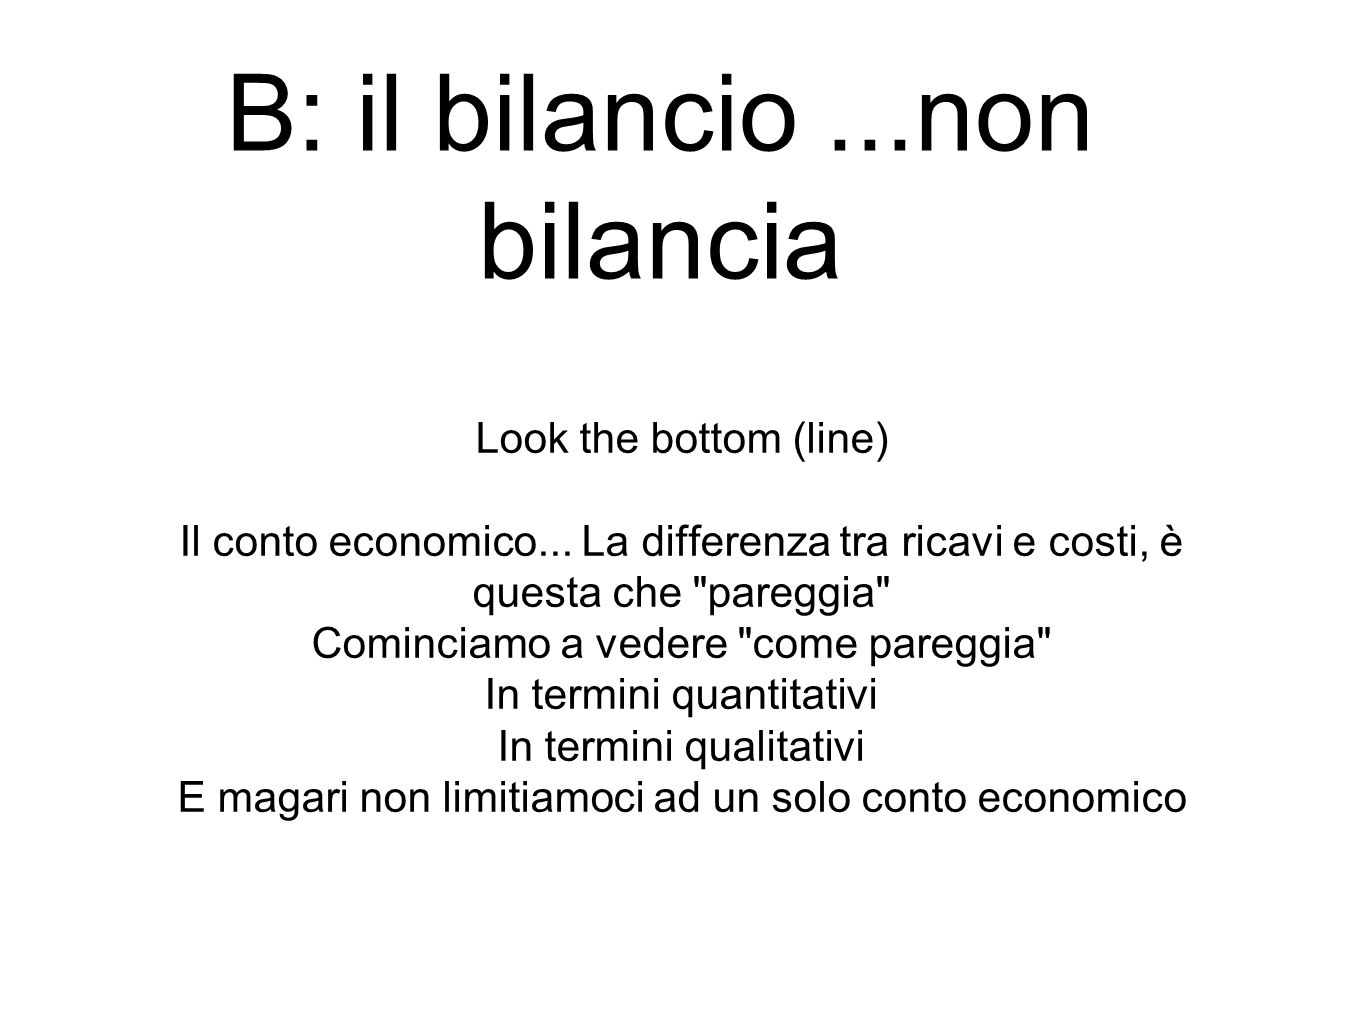 Look the bottom (line) Il conto economico...